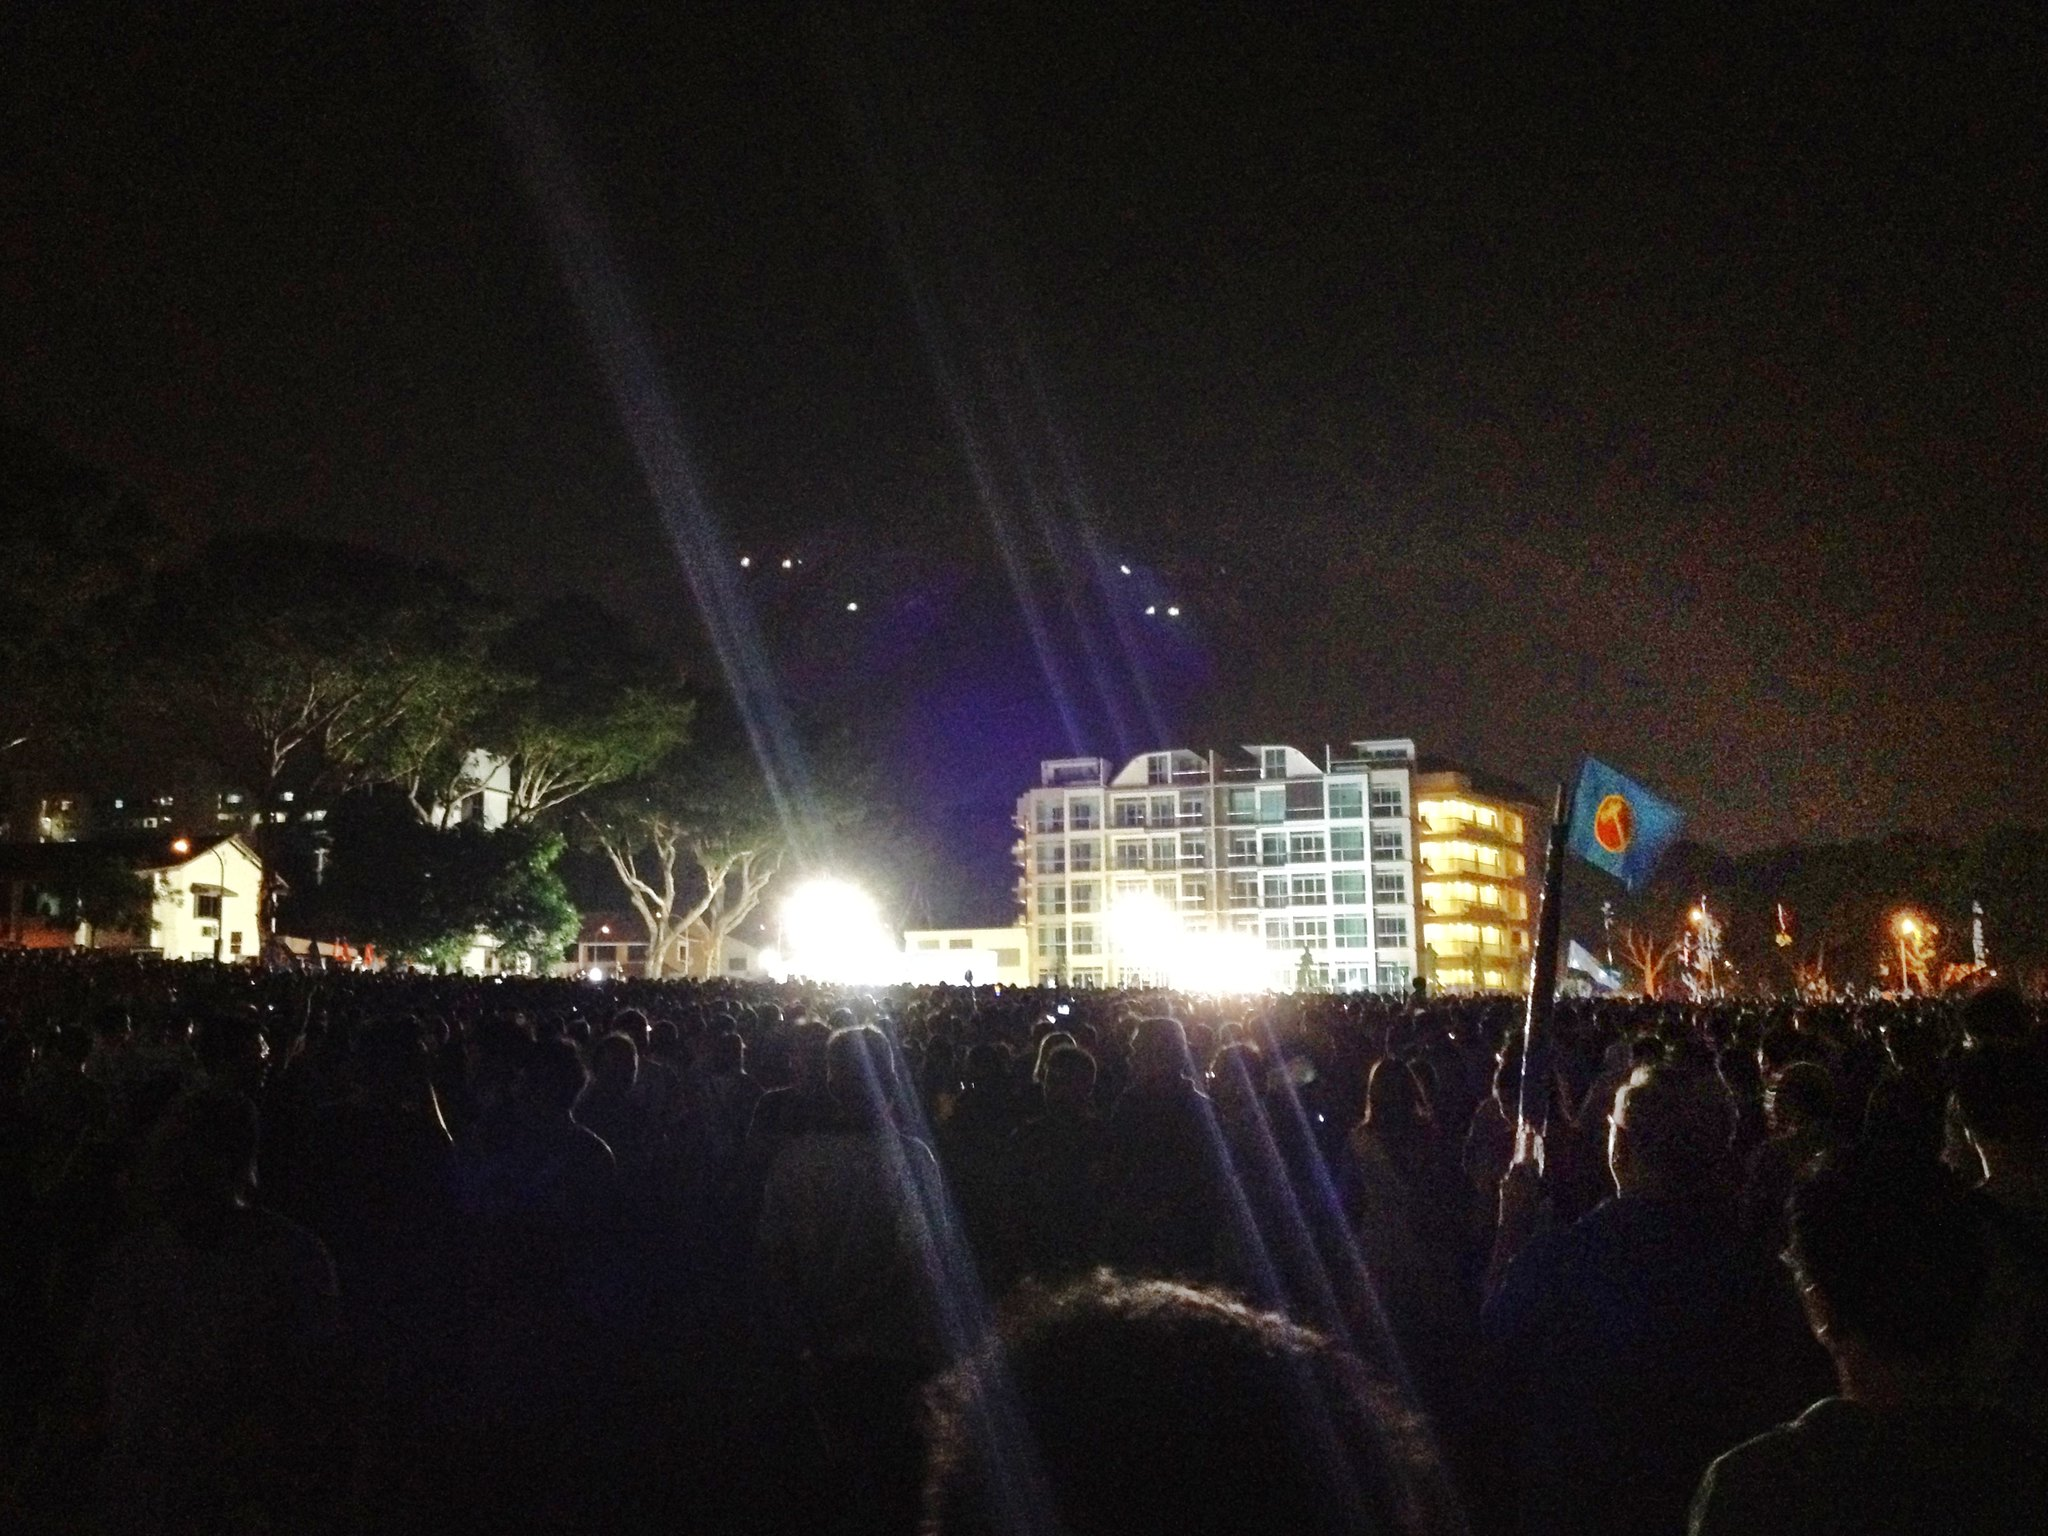 Singapore General Elections 2015: Workers Party Rally in Hougang